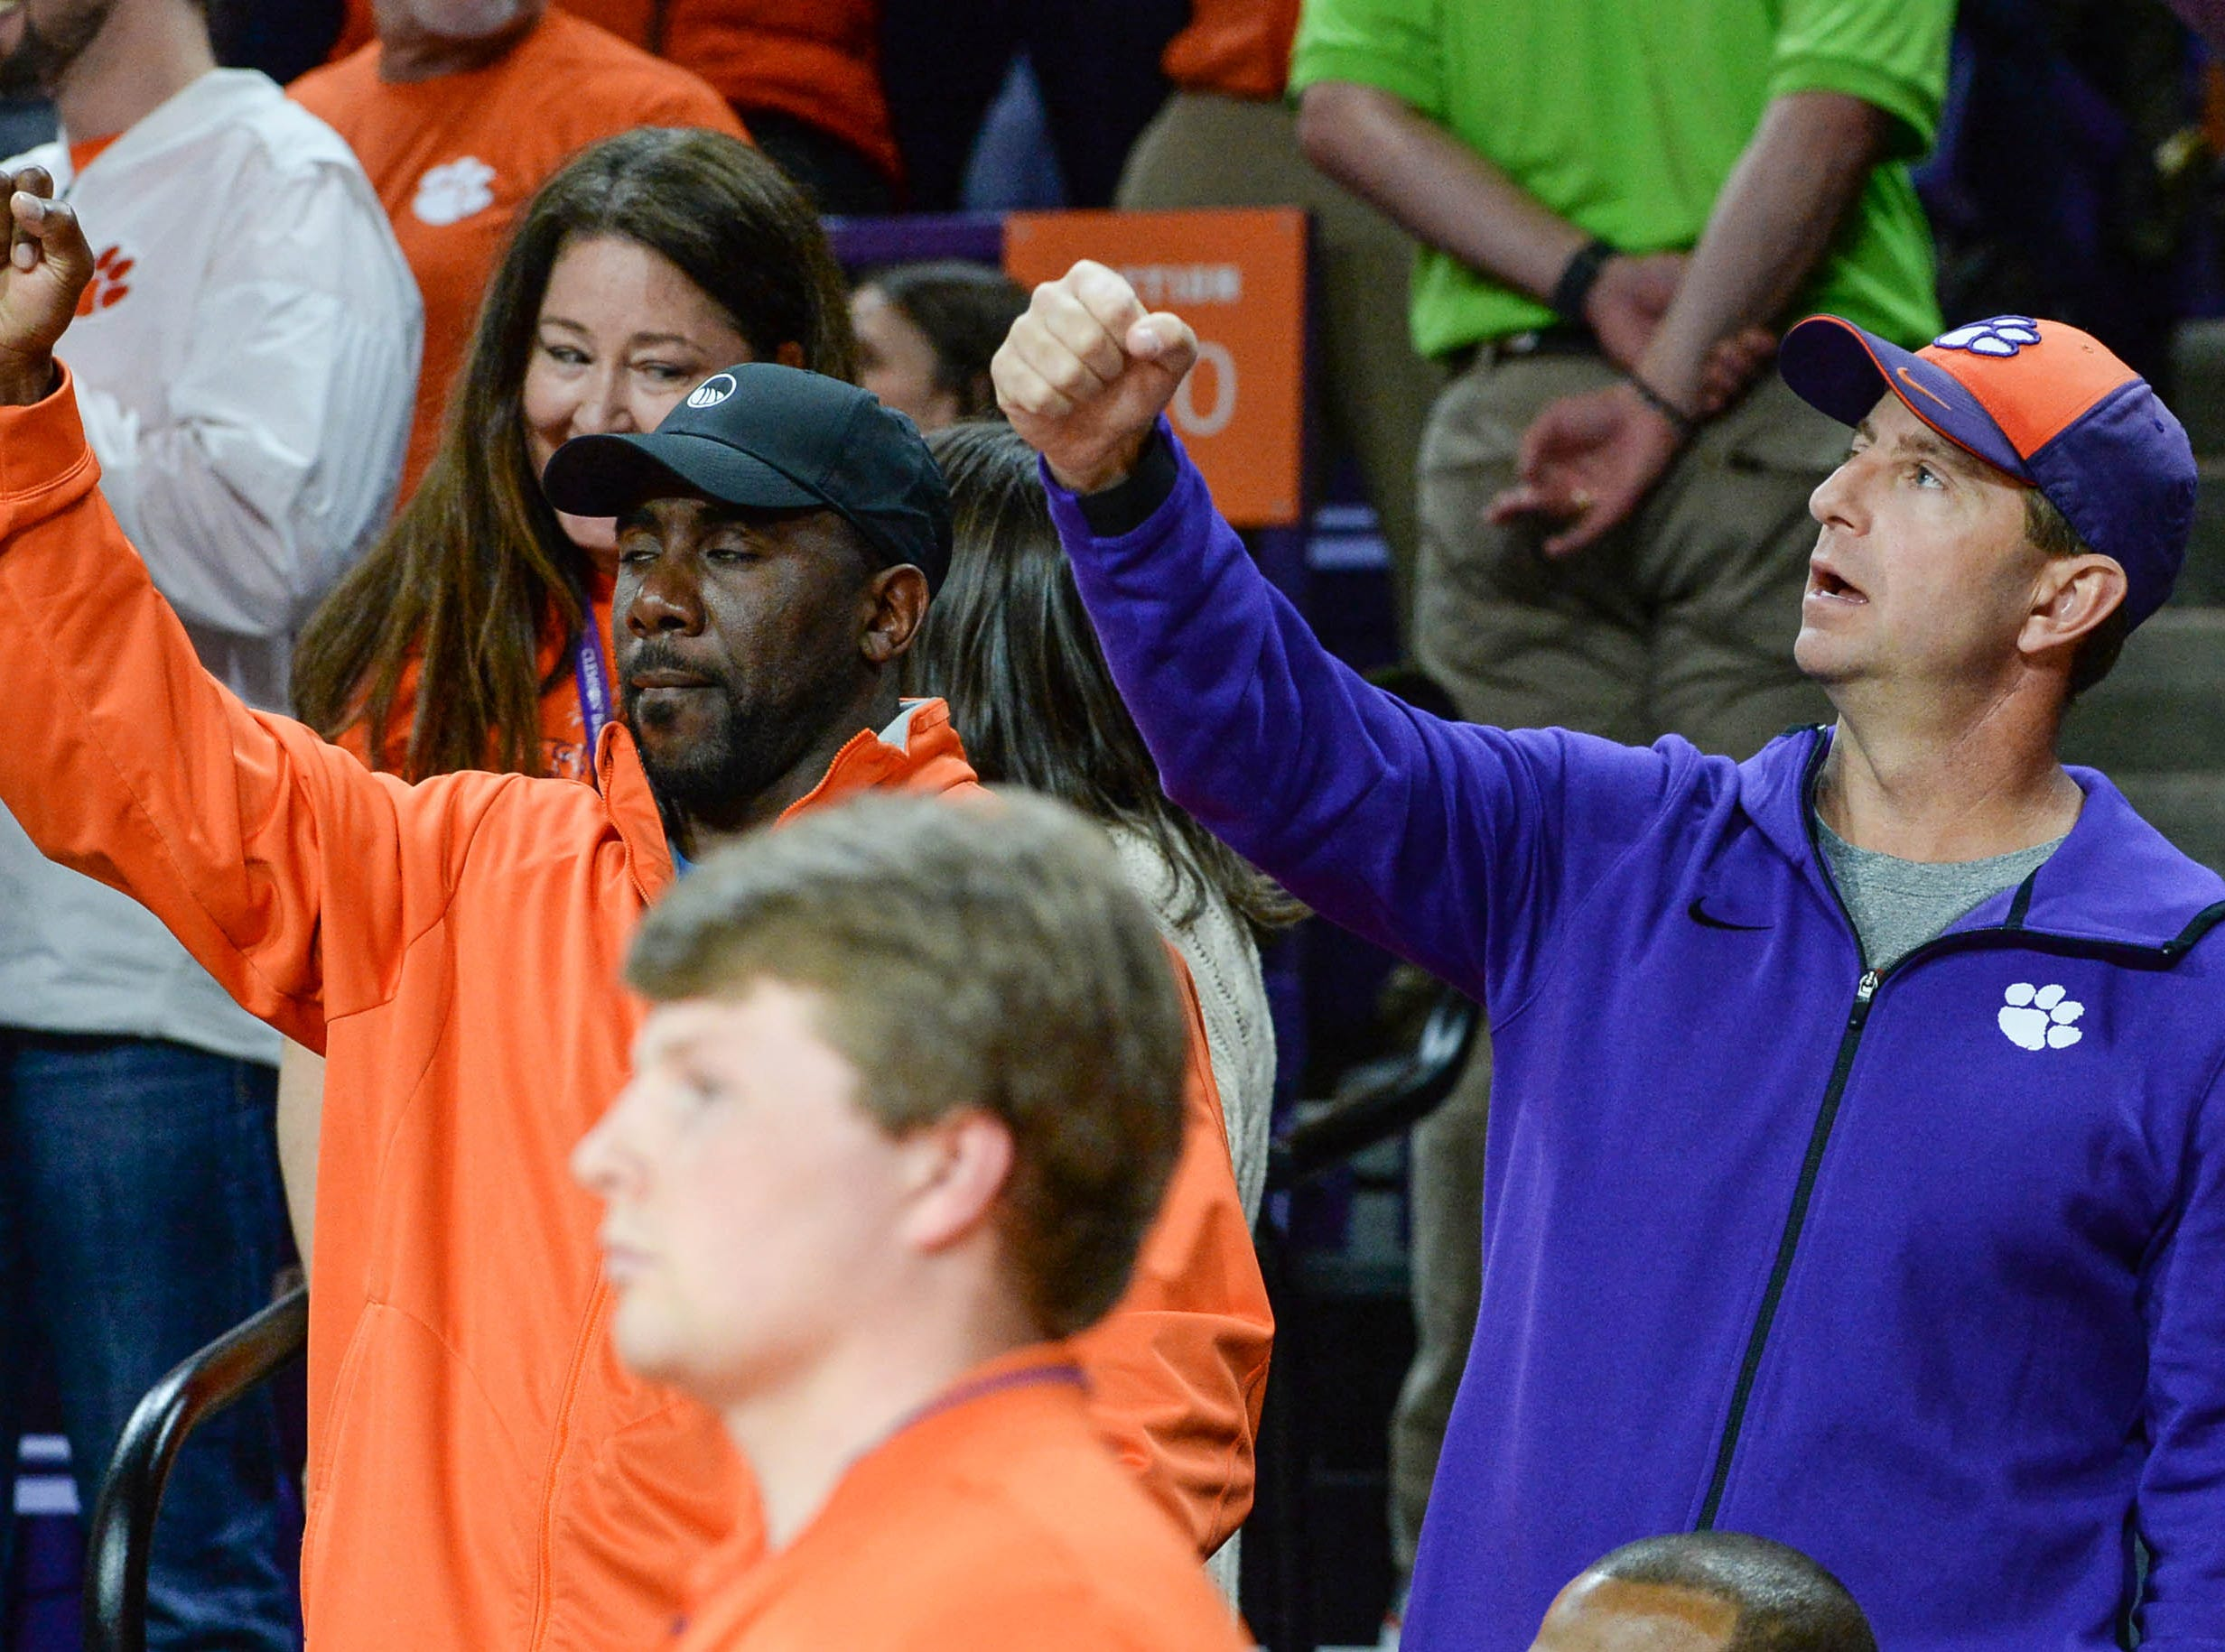 Former football star C.J. Spiller, left, and Clemson football coach Dabo Swinney cheer at the Syracuse game, during the second half in Littlejohn Coliseum in Clemson Saturday, March 9, 2019.